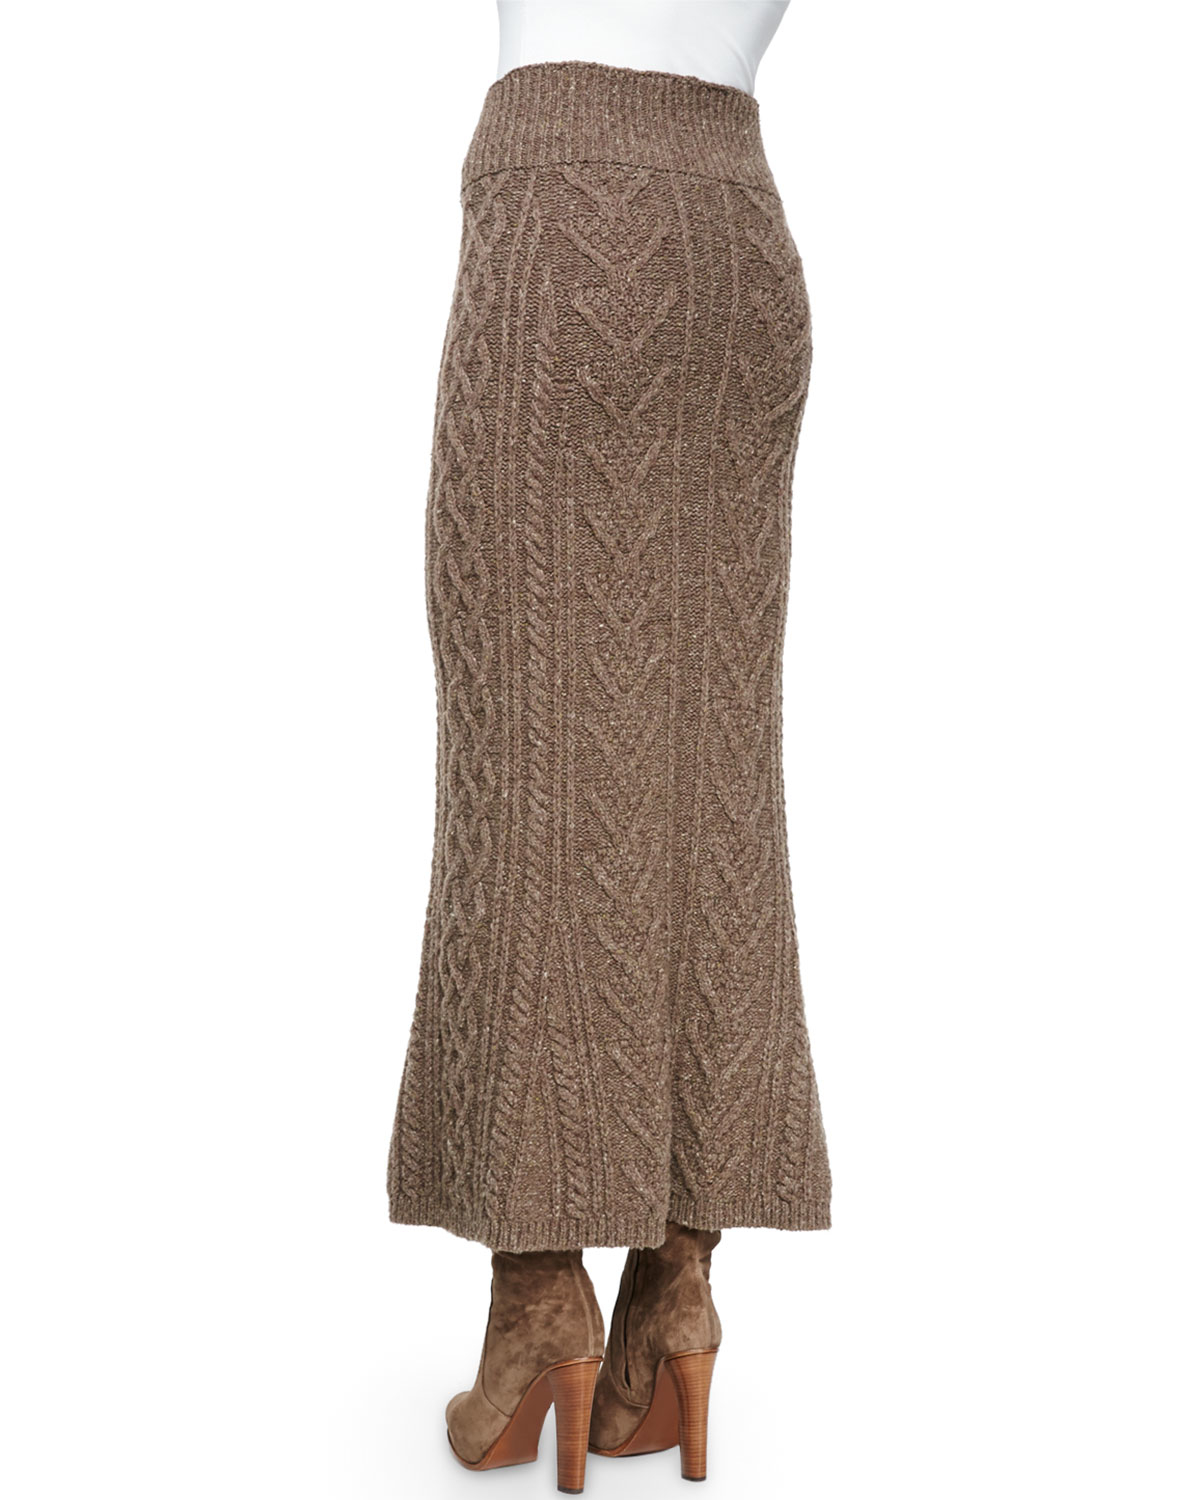 5b73217f6b8fd3 Ralph Lauren Collection Long Cable-Knit Cashmere Skirt in Brown - Lyst